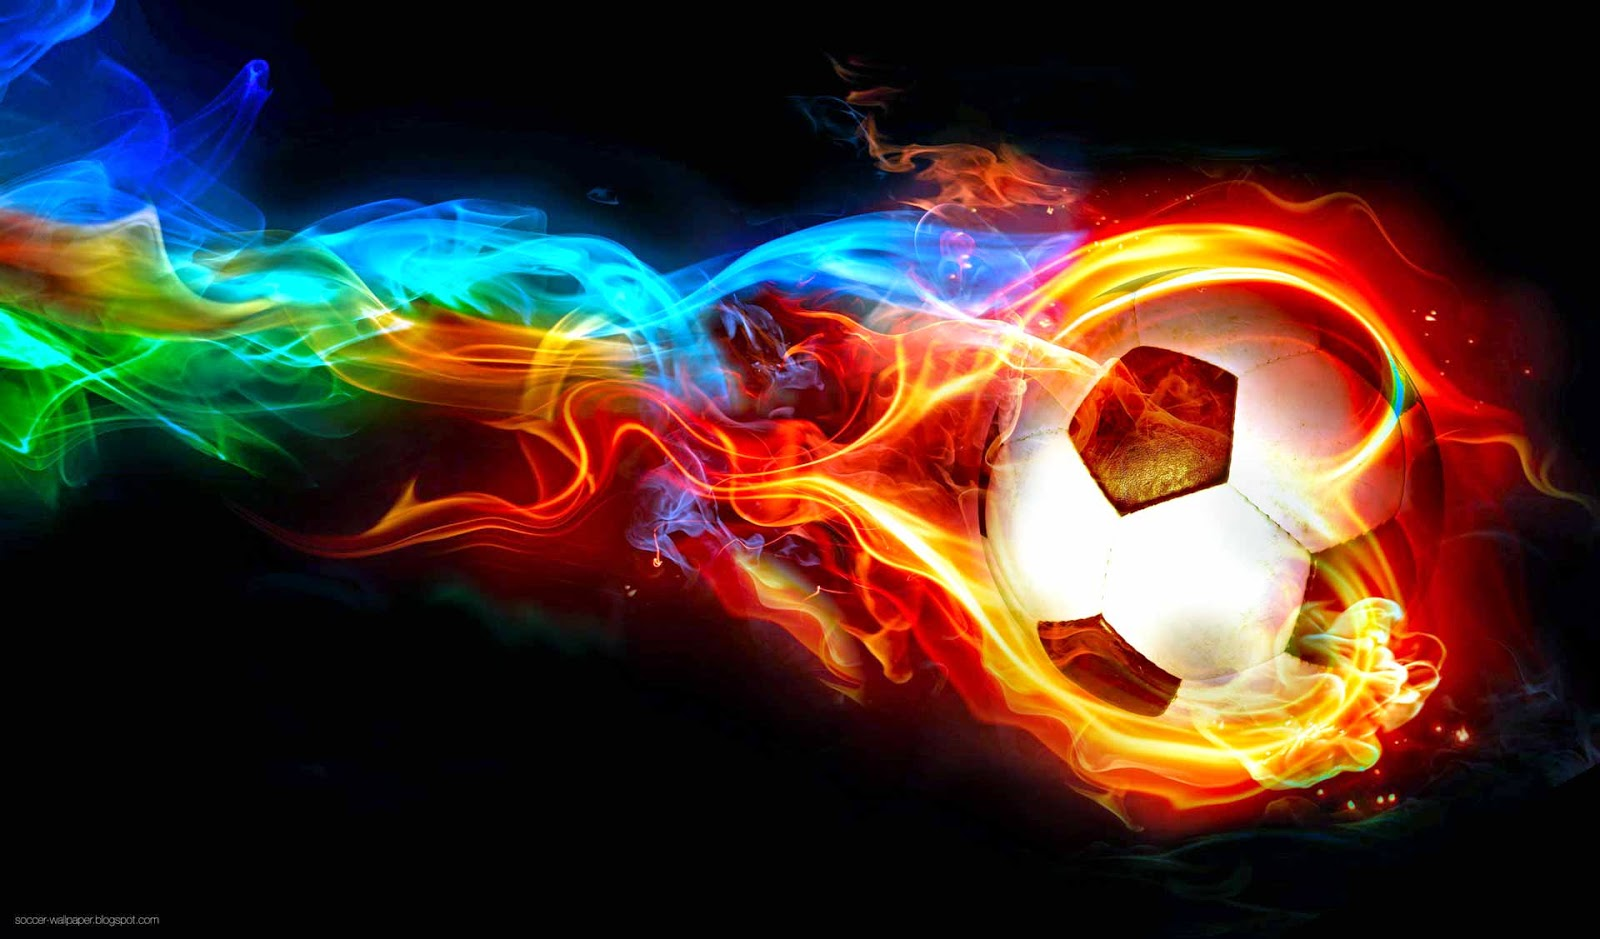 Soccer Ball Wallpaper: Soccer Wallpaper